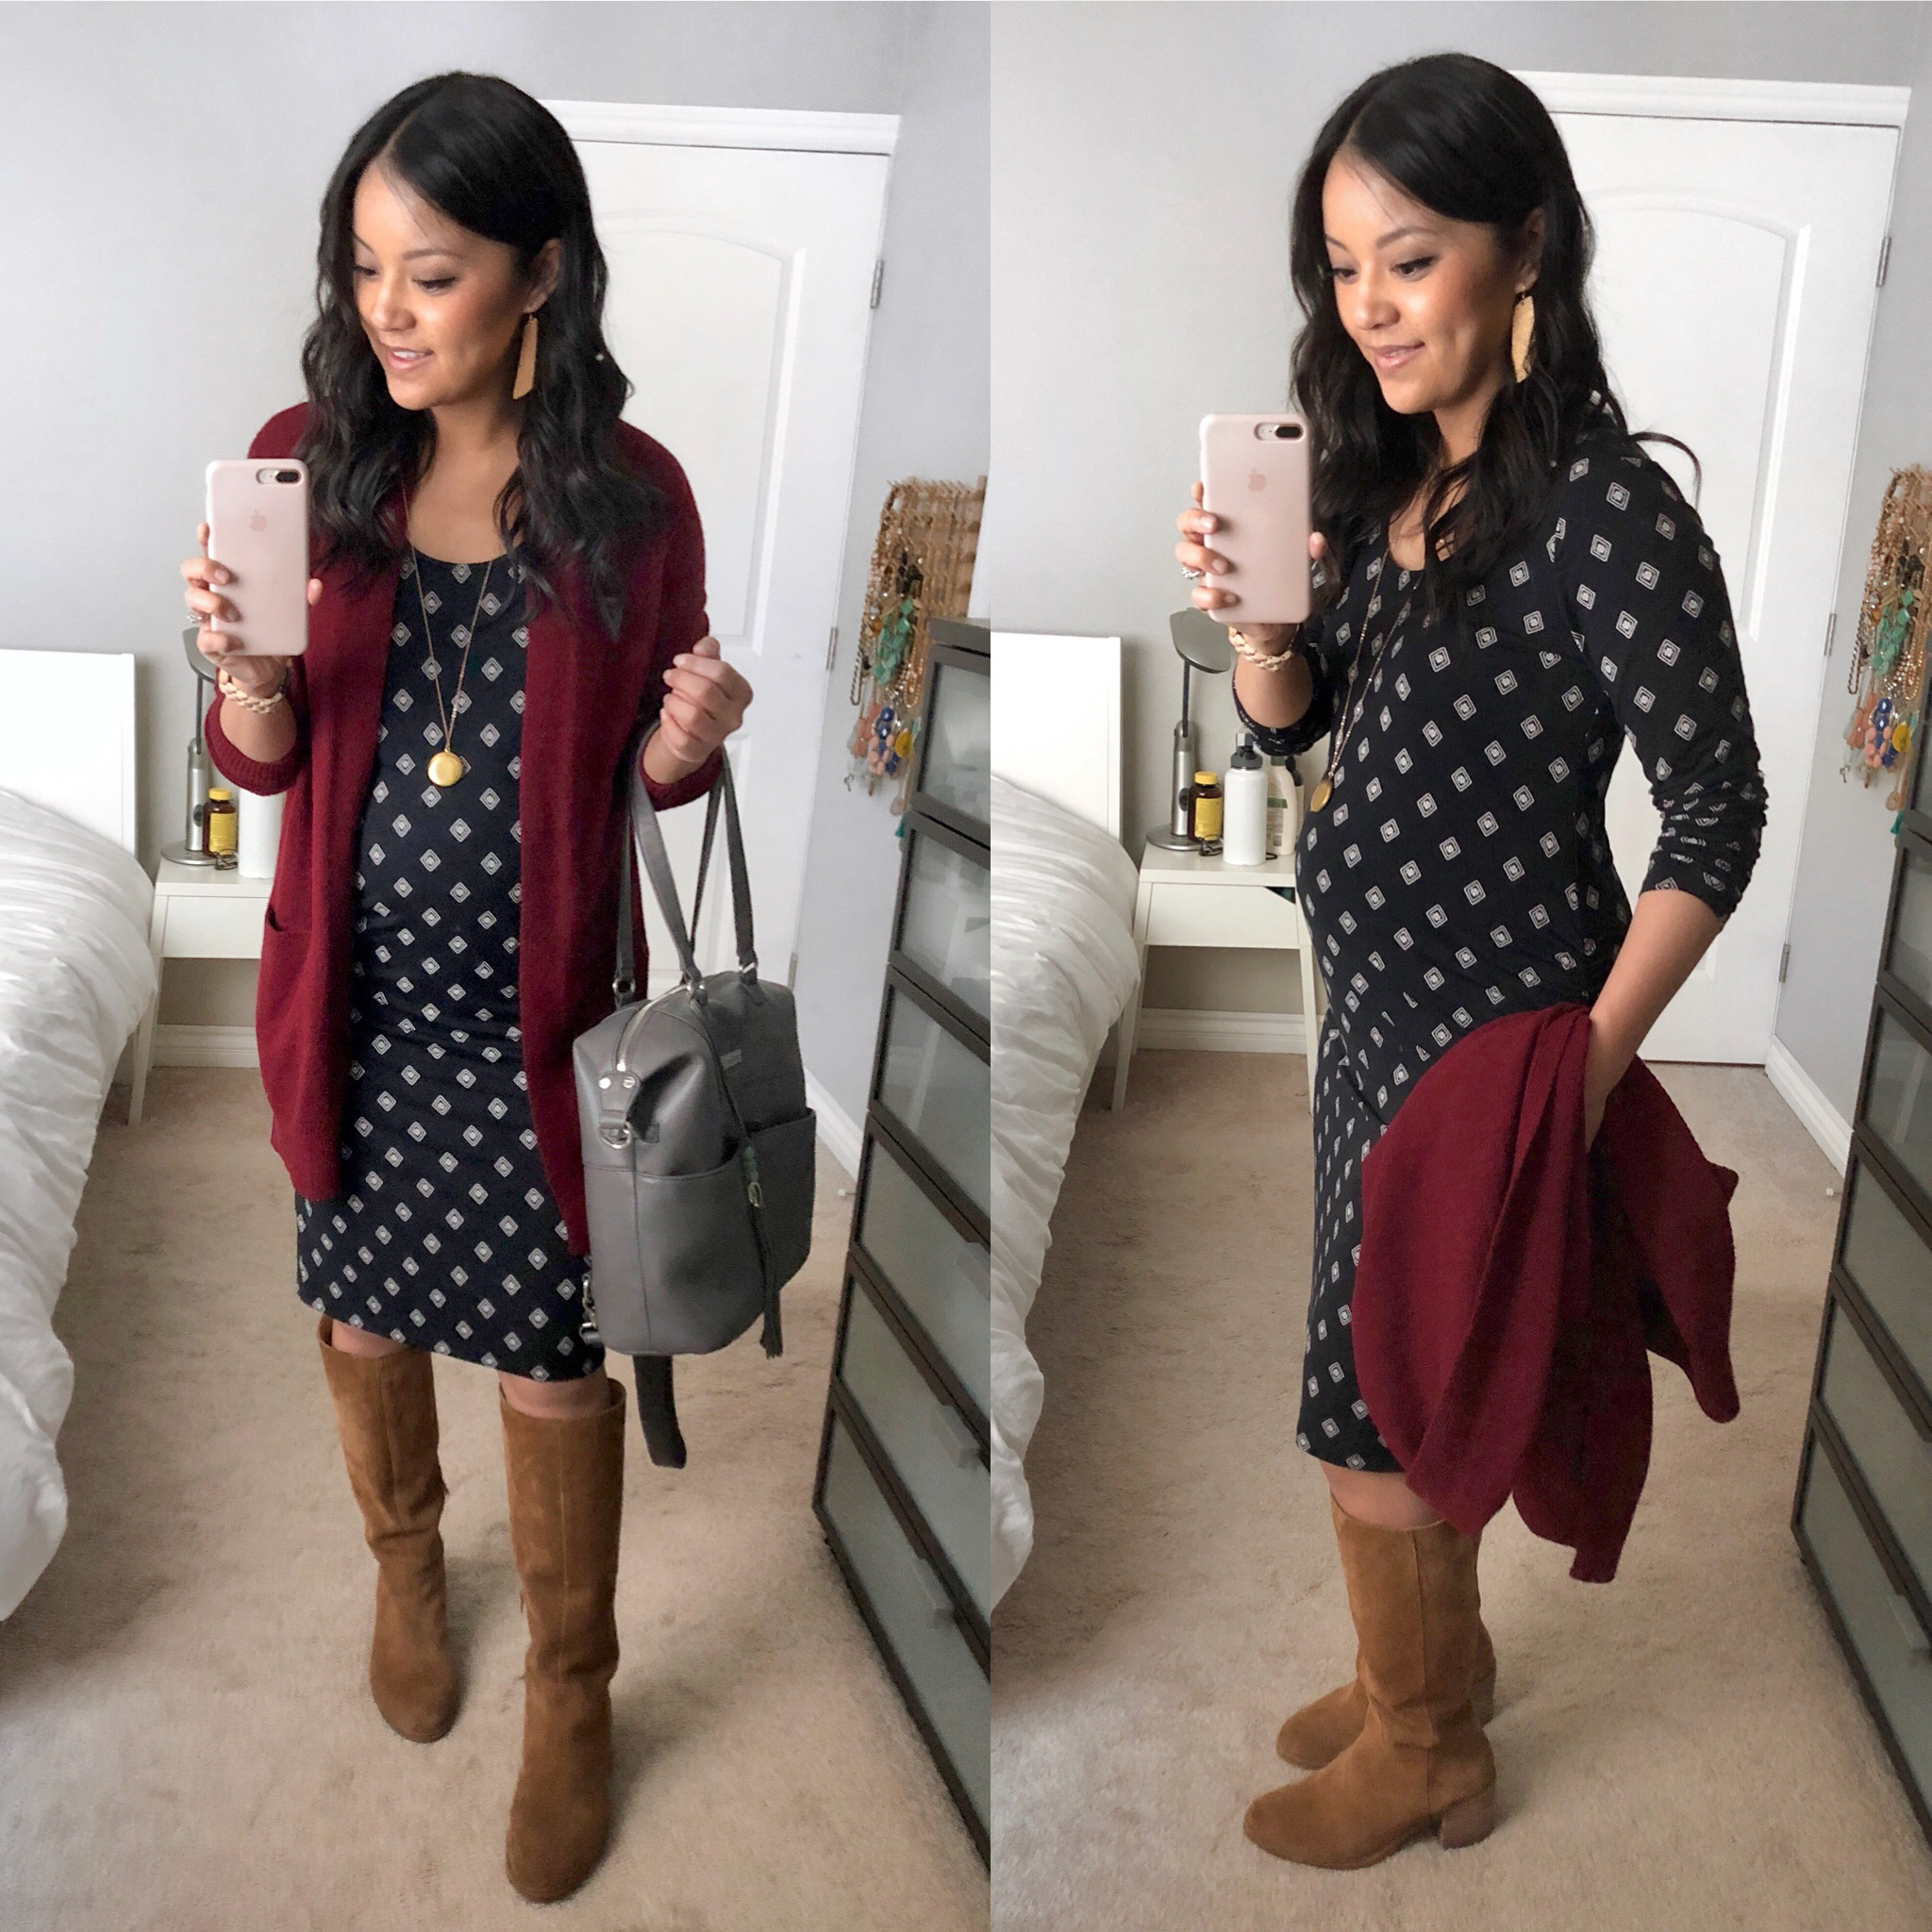 f57dd33966a464 Printed Maternity Dress + Statement Earrings Maroon Cardigan + Printed Dress  + Lily Jade Bag + Boots